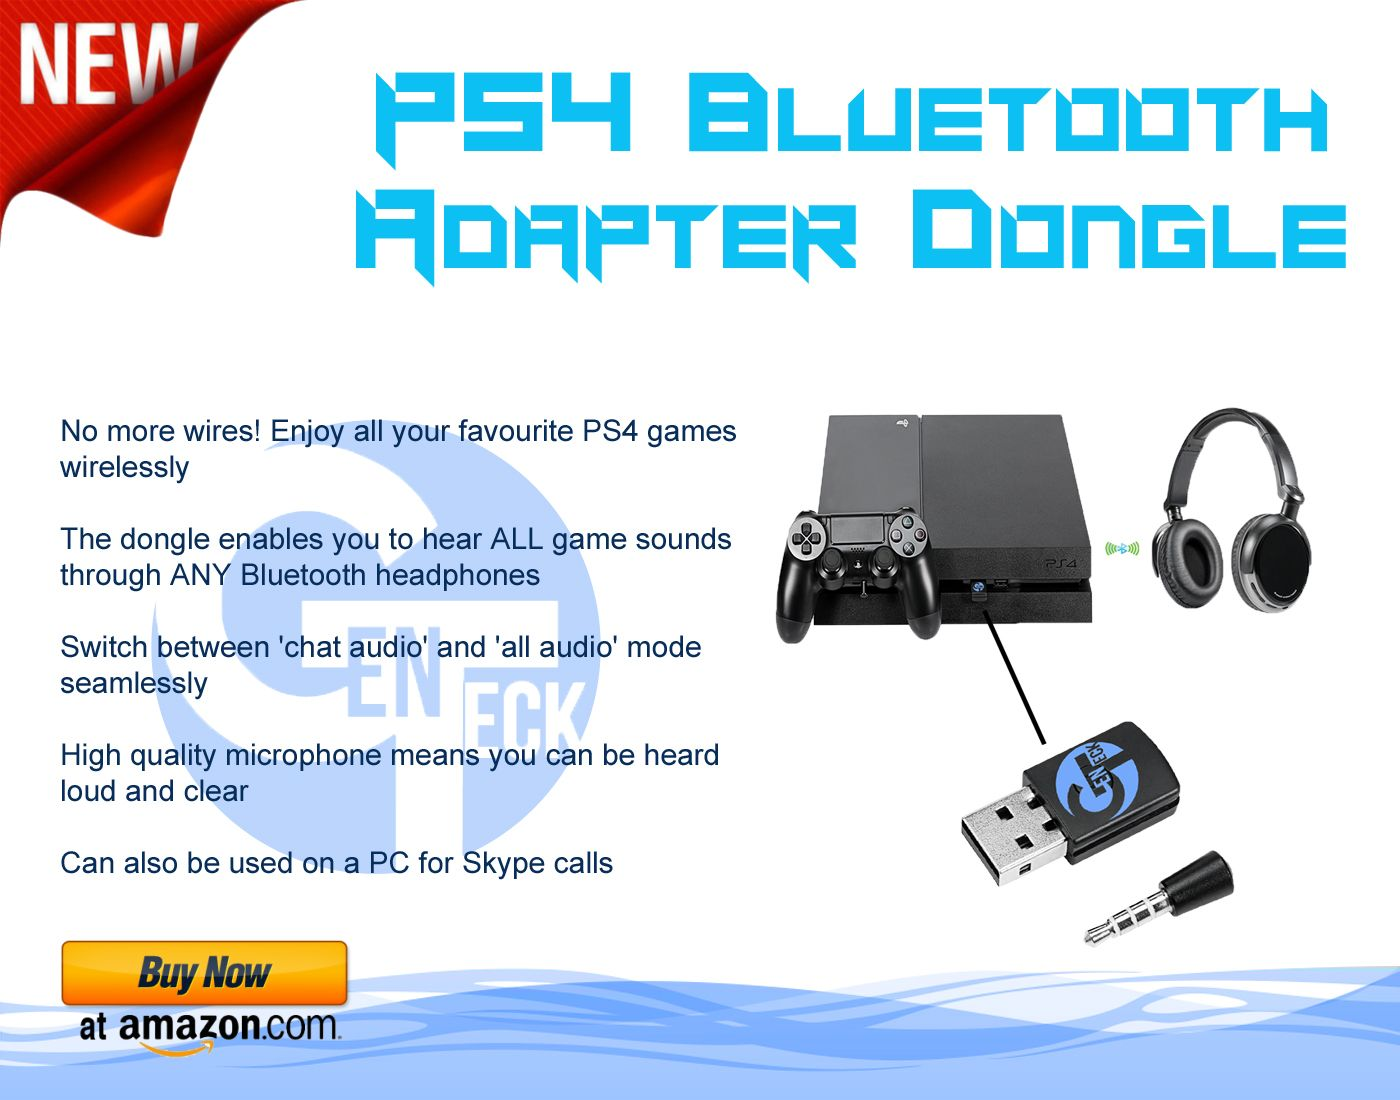 Review Honestly No Need For Instructions Its So Easy Within Minutes Of It Arriving I Was Connected And Ready To Go Http Www Amazon Com Ps4 Usb Bluetooth